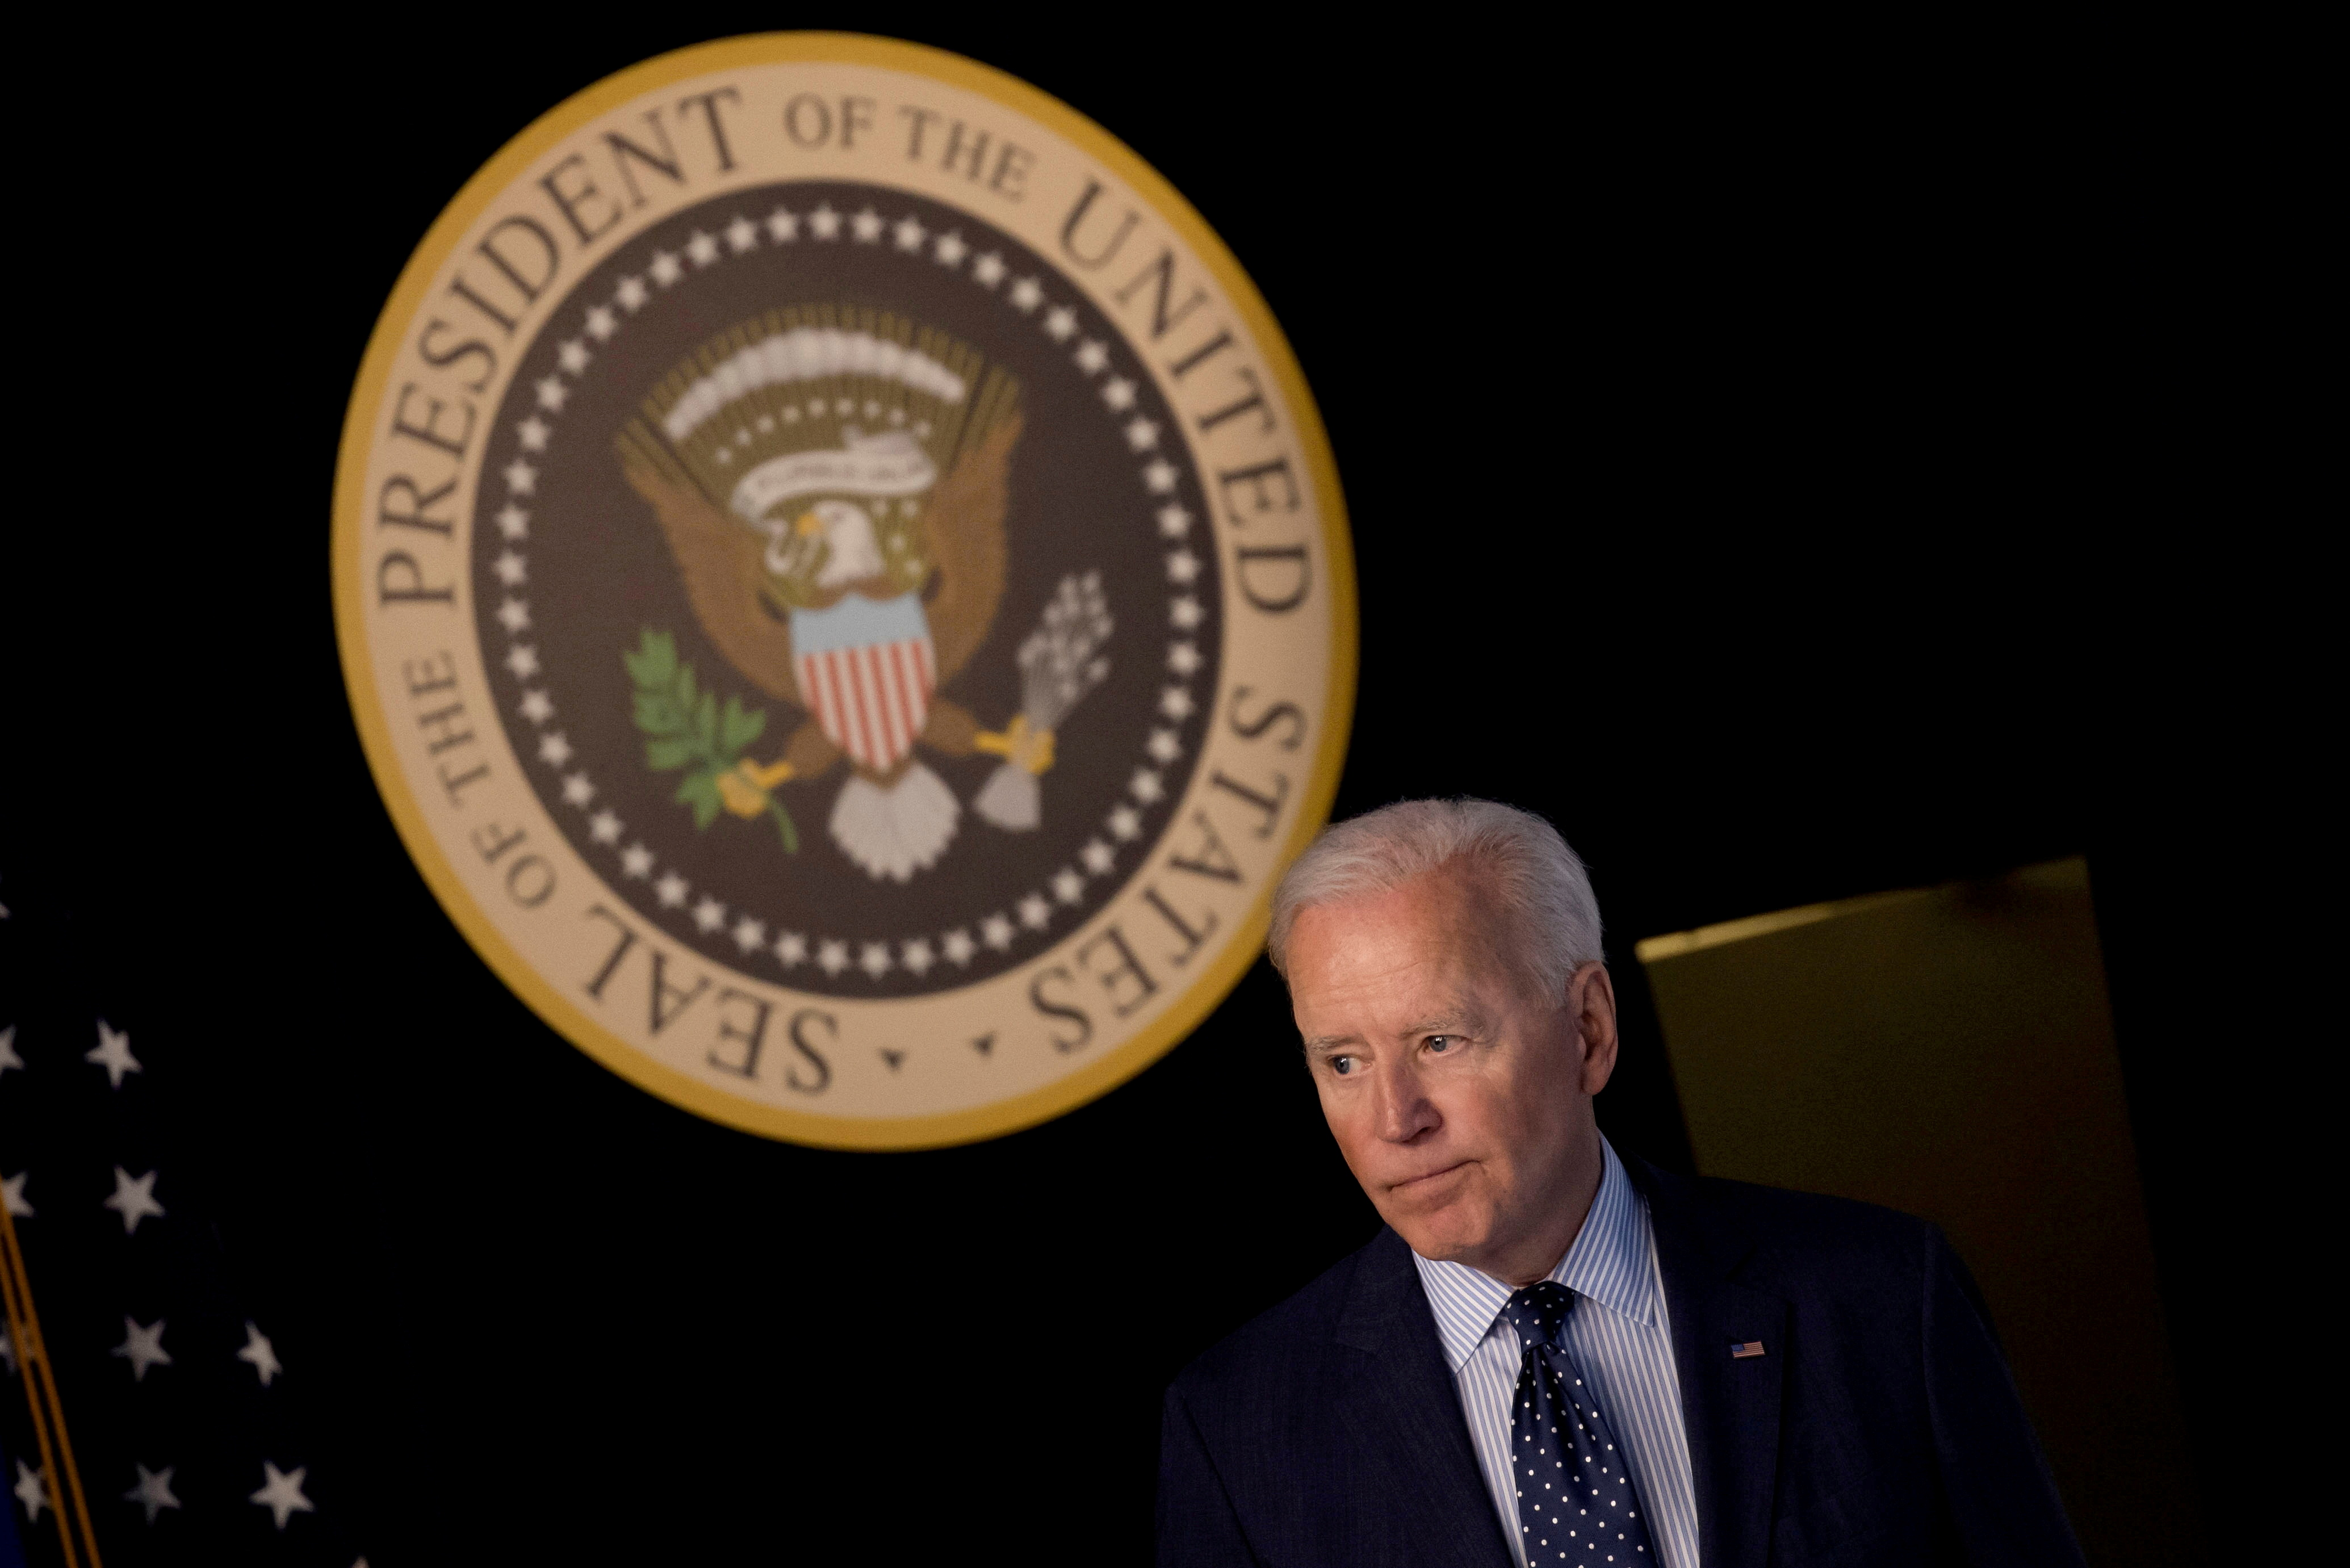 U.S. President  Joe Biden departs after giving a briefing at the White House in Washington, June 2, 2021. REUTERS/Carlos Barria/File Photo